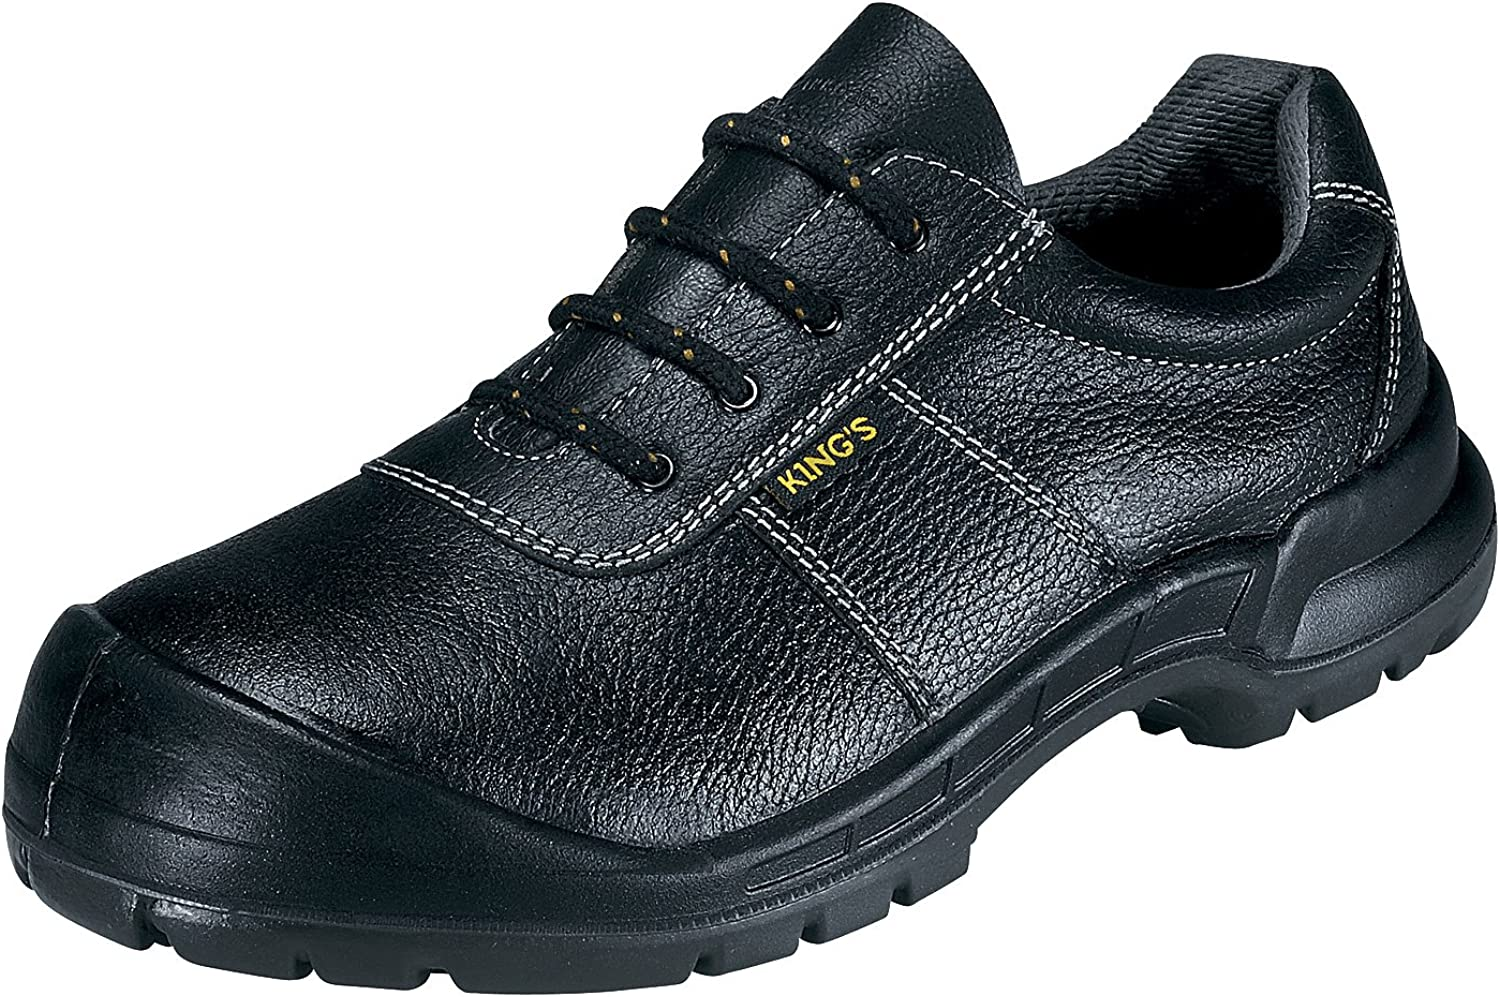 53711 Extra Wide Black Safety Boots